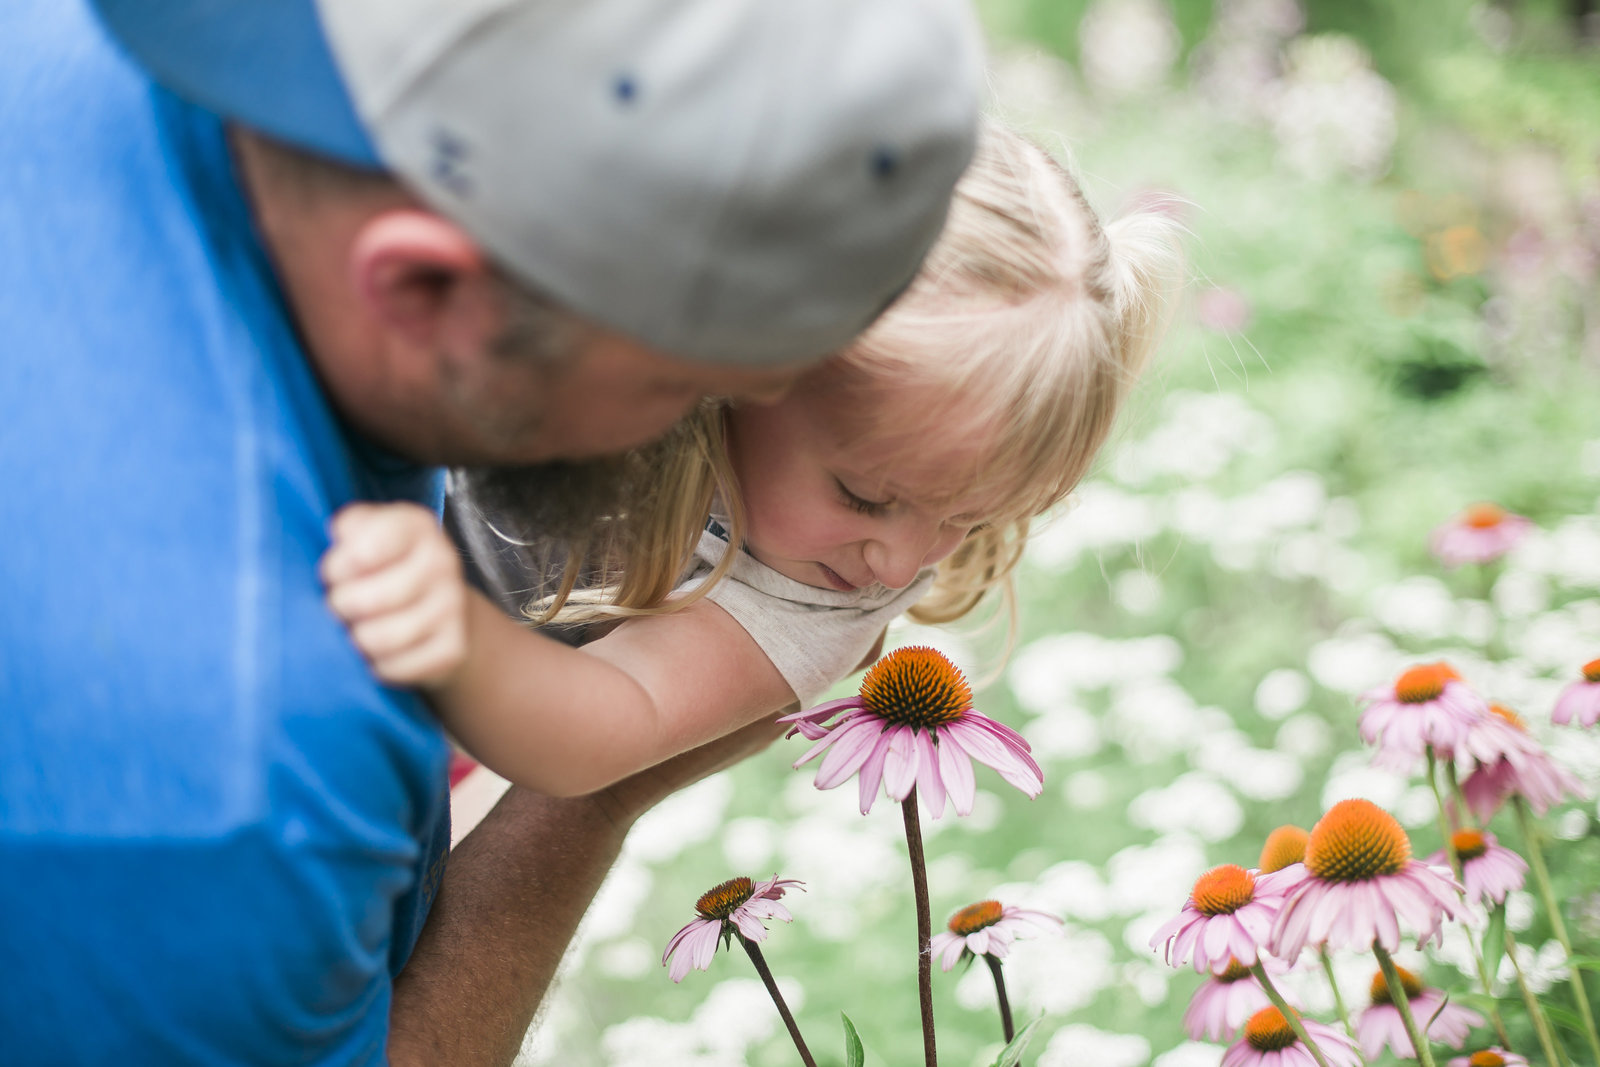 Smelling the flowers with my kiddo